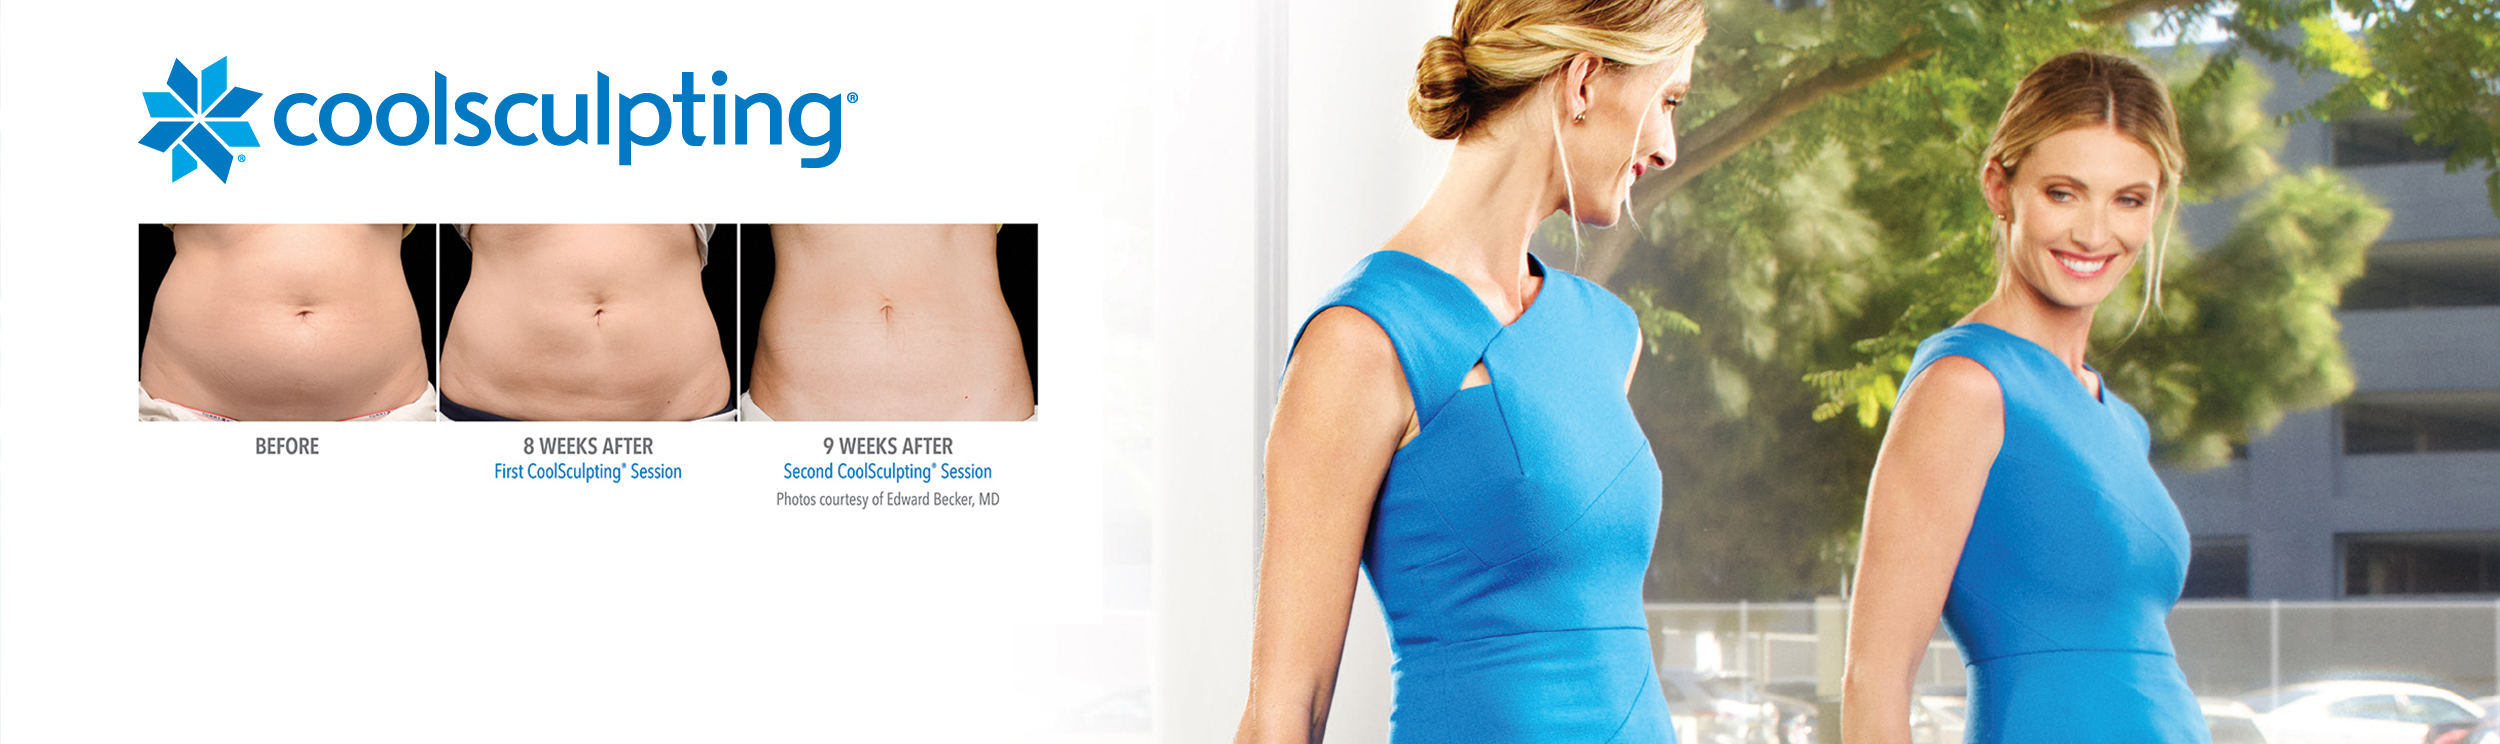 home-page-coolsculpting